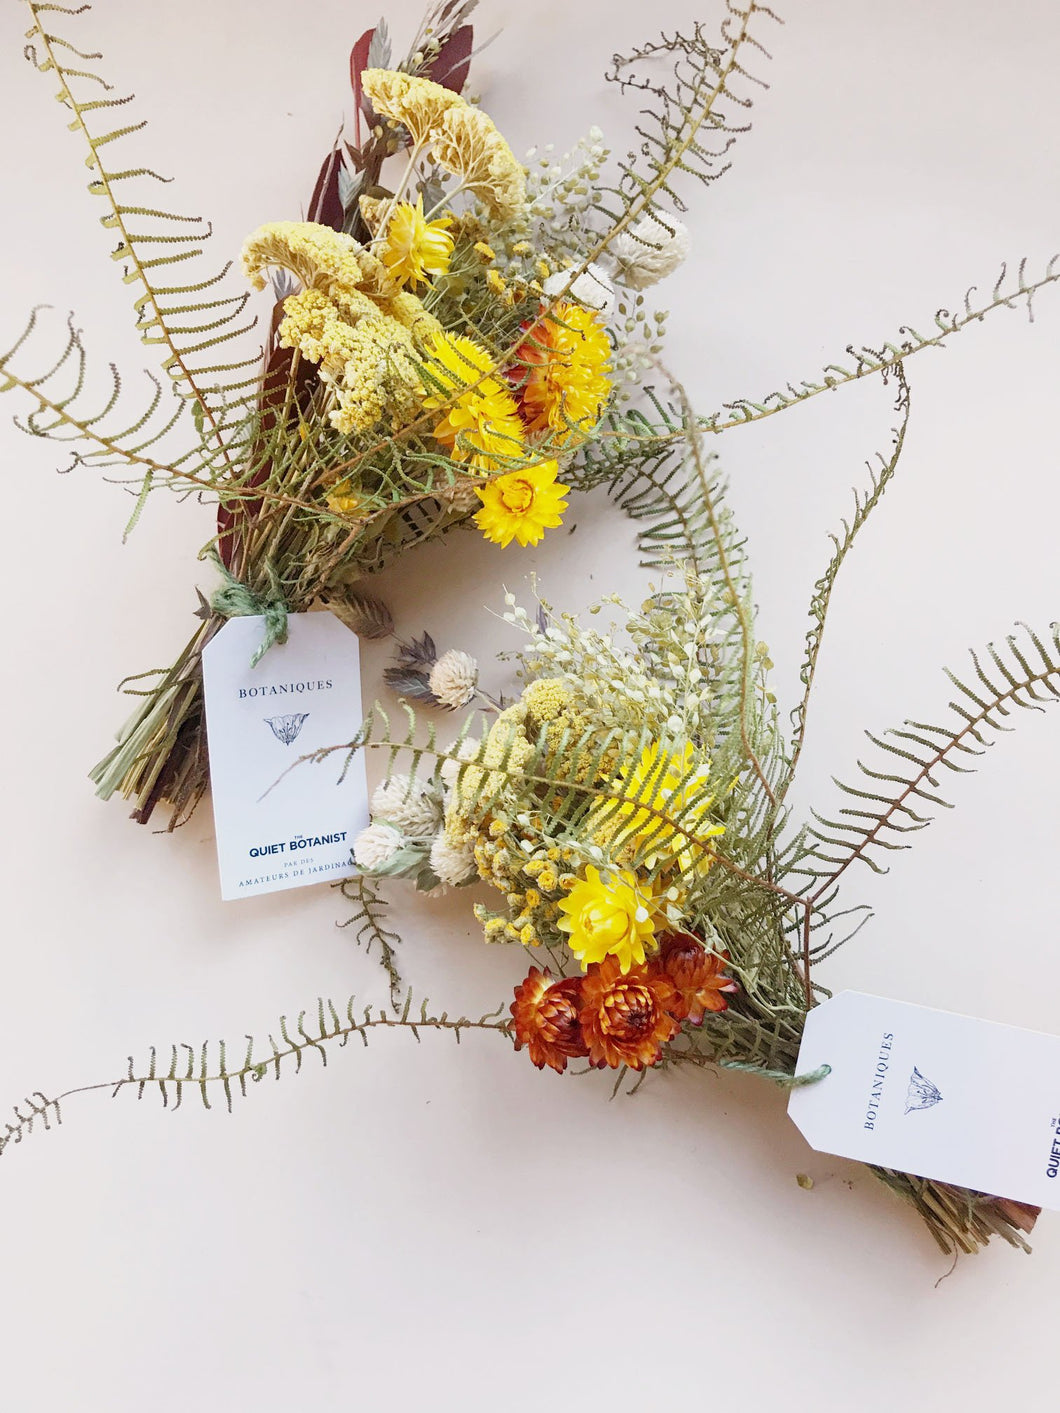 A dried flower bouquet made with yarrow, strawflower, globe amaranth, sea star fern, pepper grass and tansy. A bright yellow bouquet.